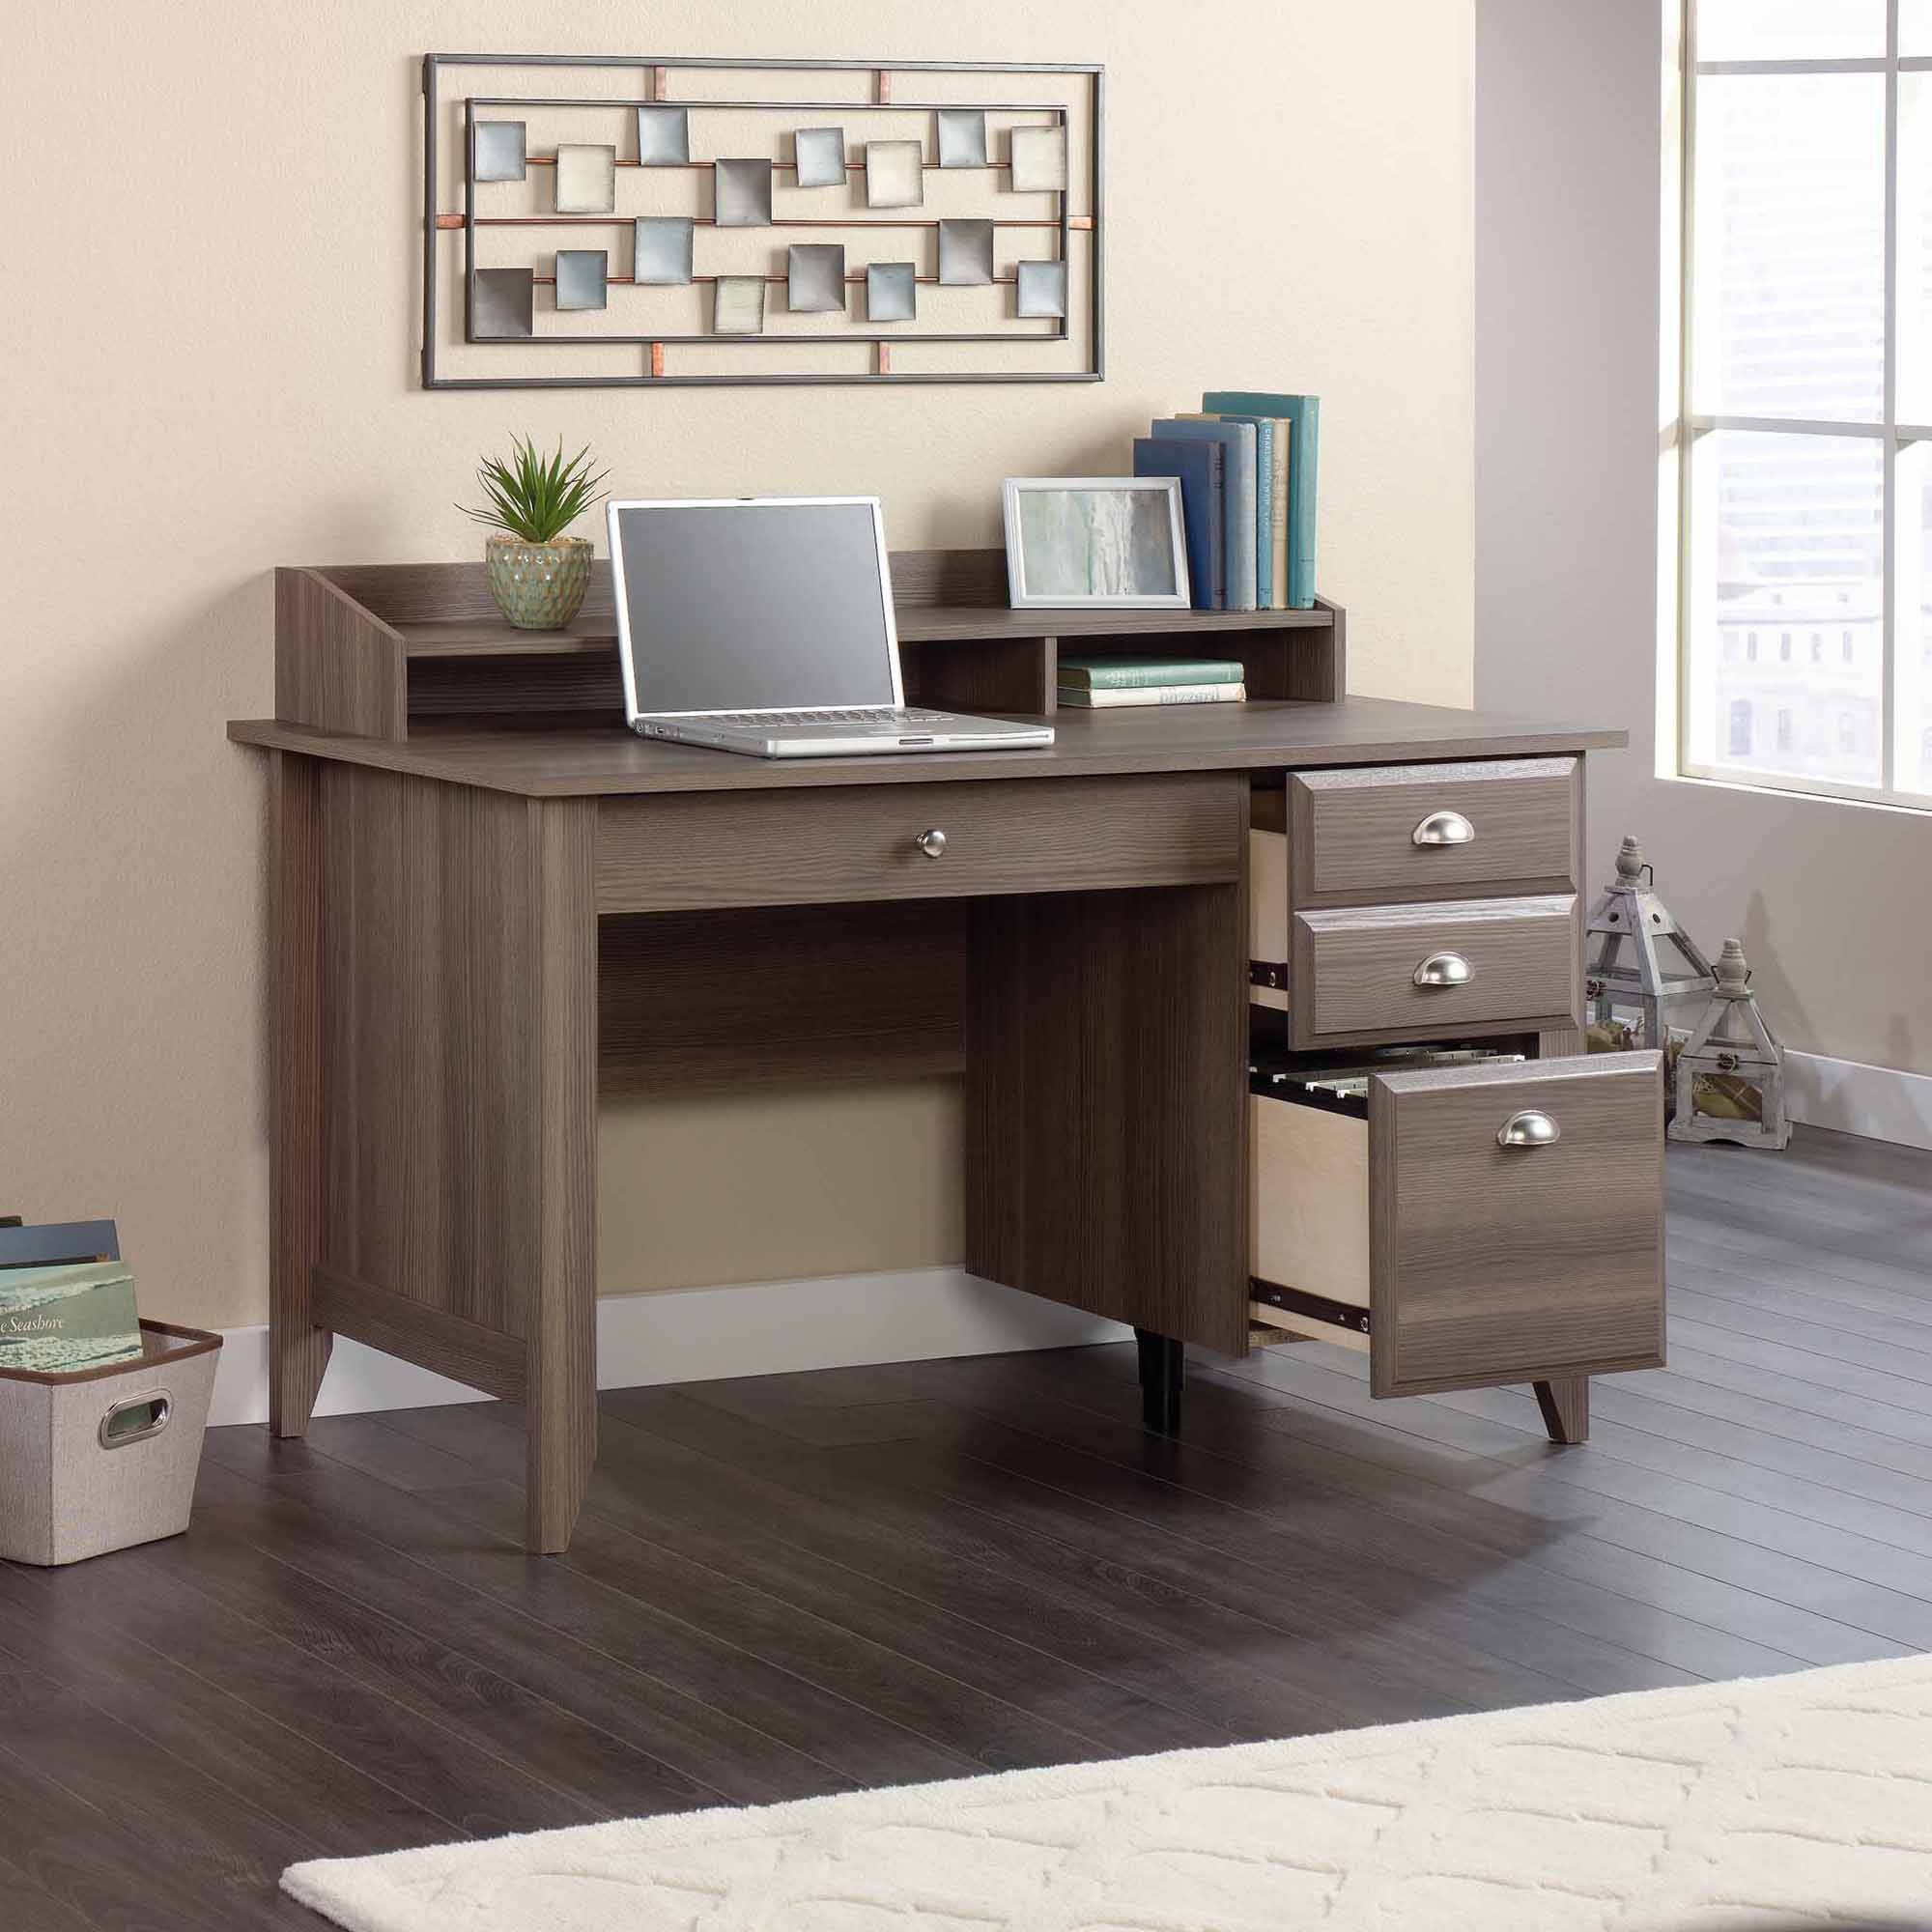 Sauder Shoal Creek Desk With Storage Drawers And Hutch Multiple Finishes Com